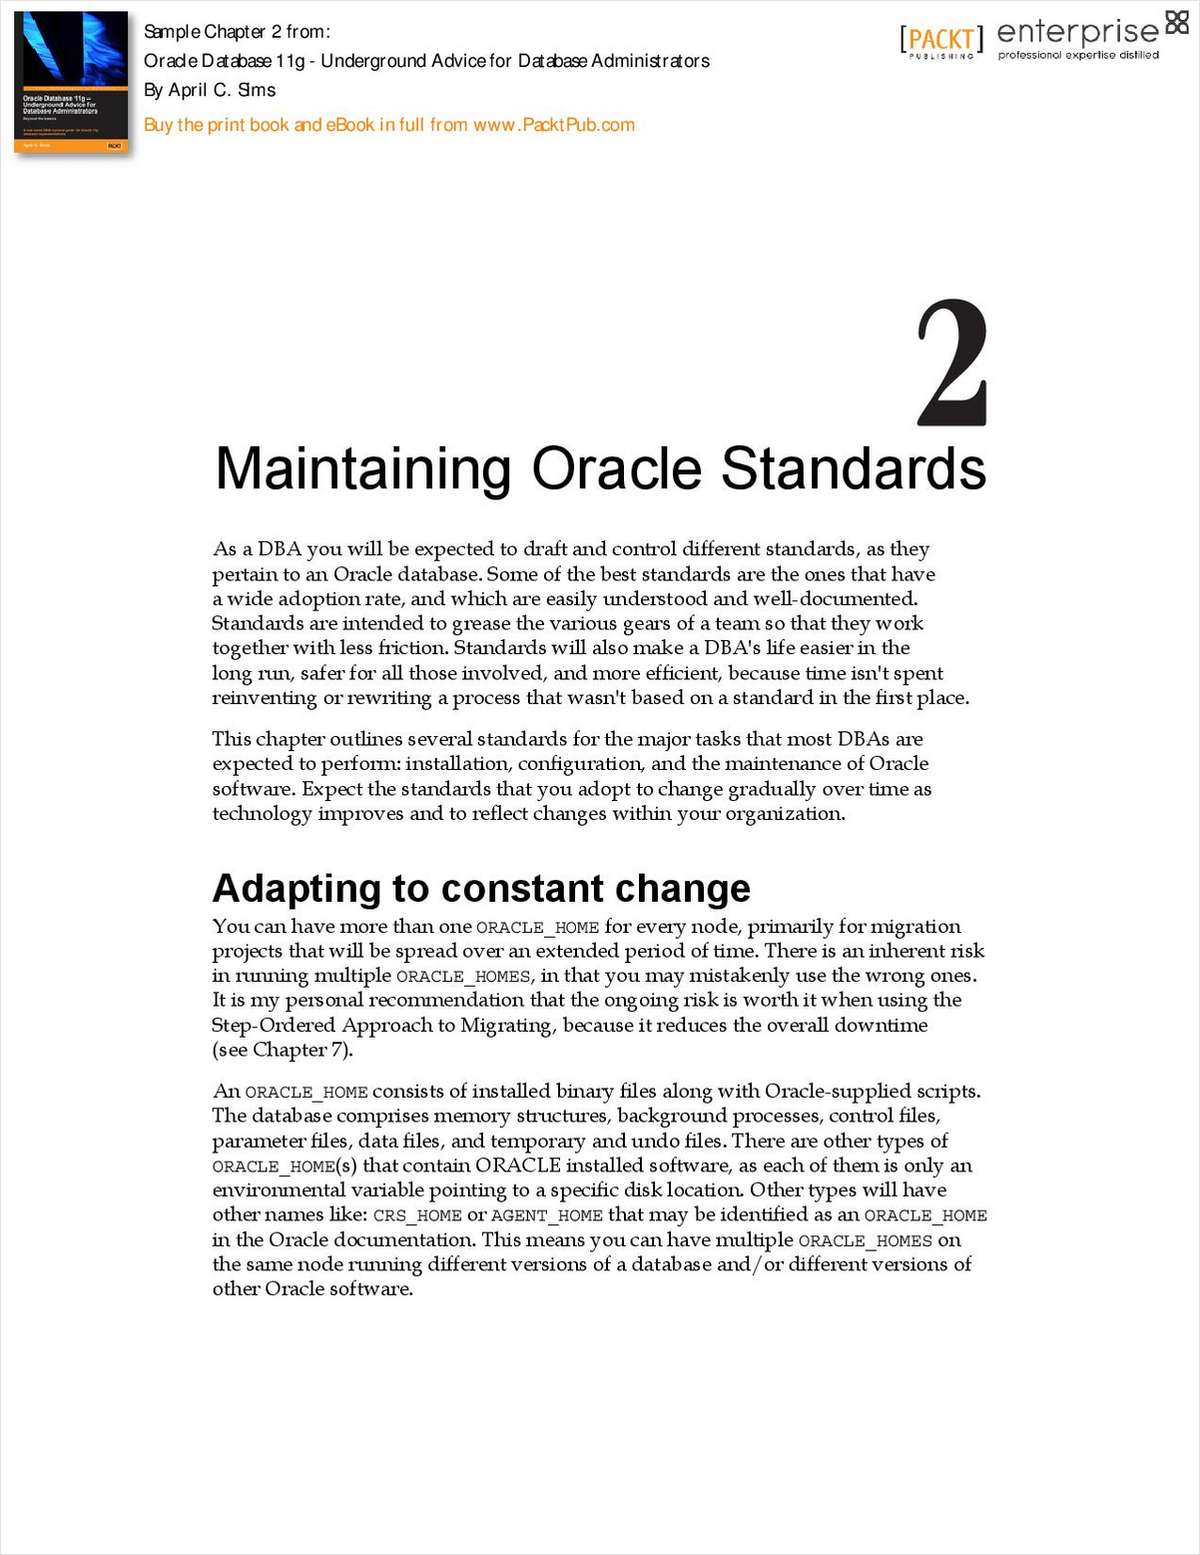 Maintaining Oracle Standards - Free Chapter from Oracle Database 11g - Underground Advice for Database Administrators